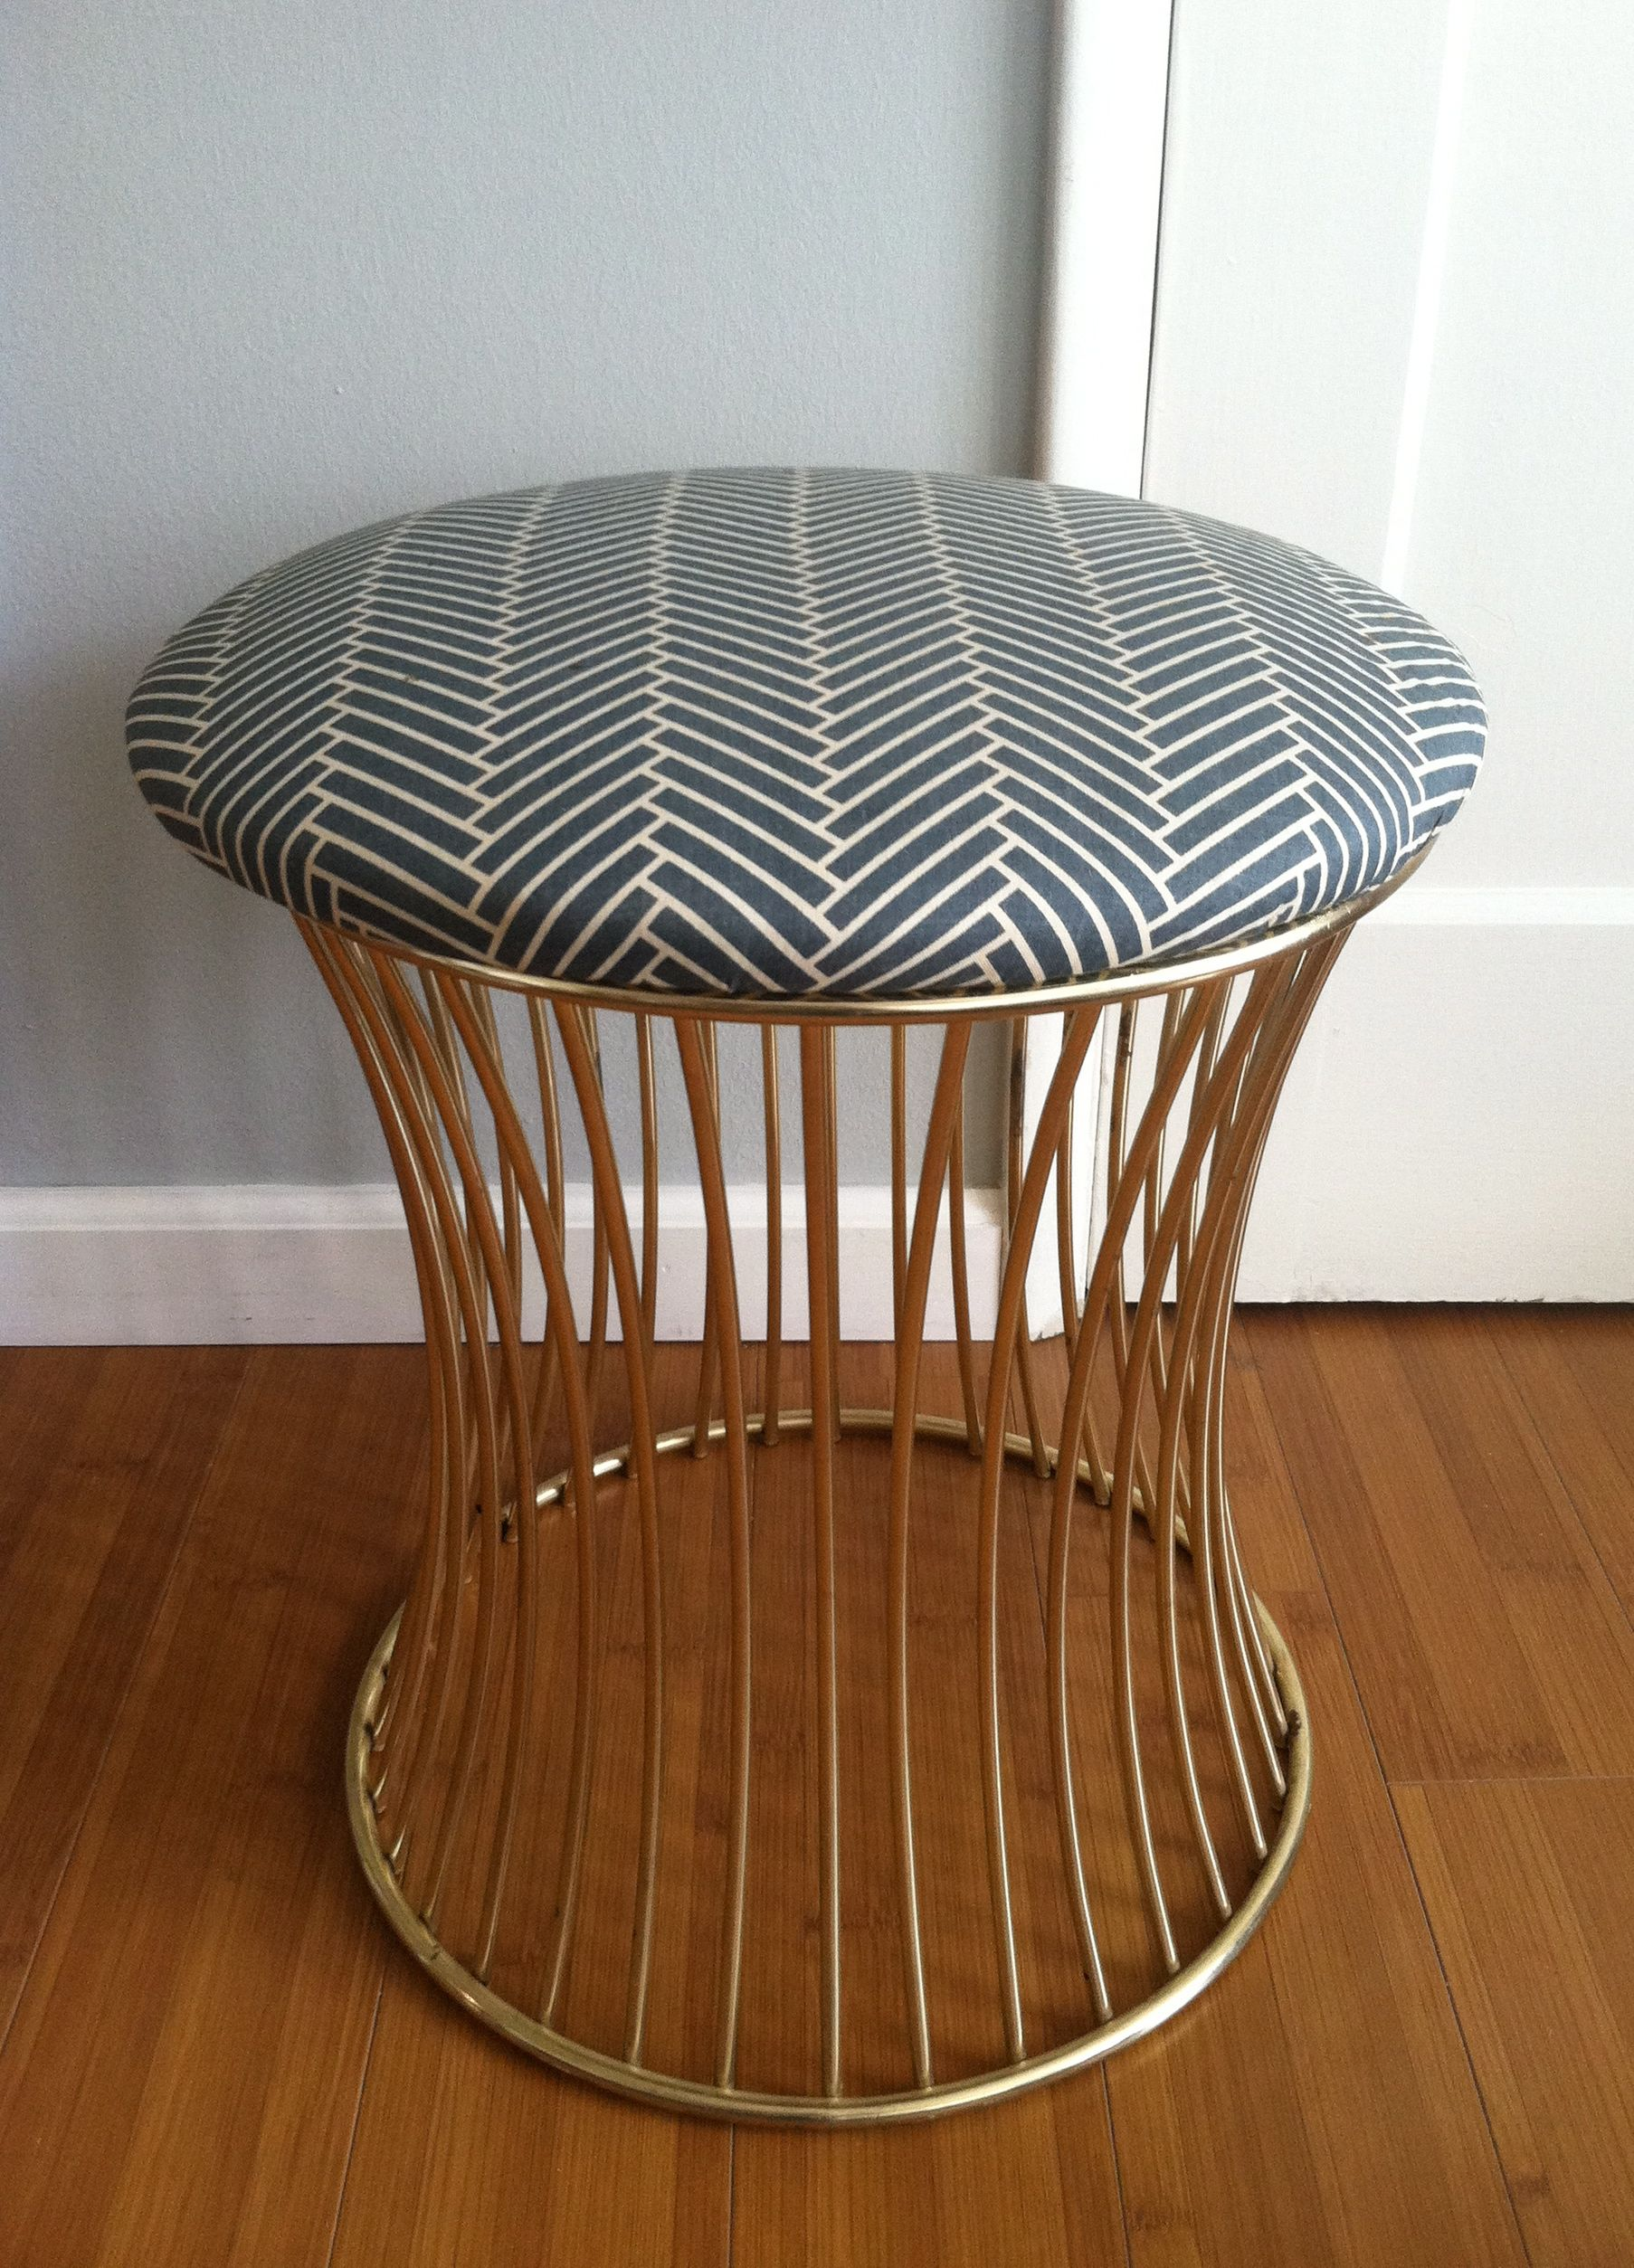 Super Chevron Stool Recovering Painted Furniture Stool Bench Gamerscity Chair Design For Home Gamerscityorg